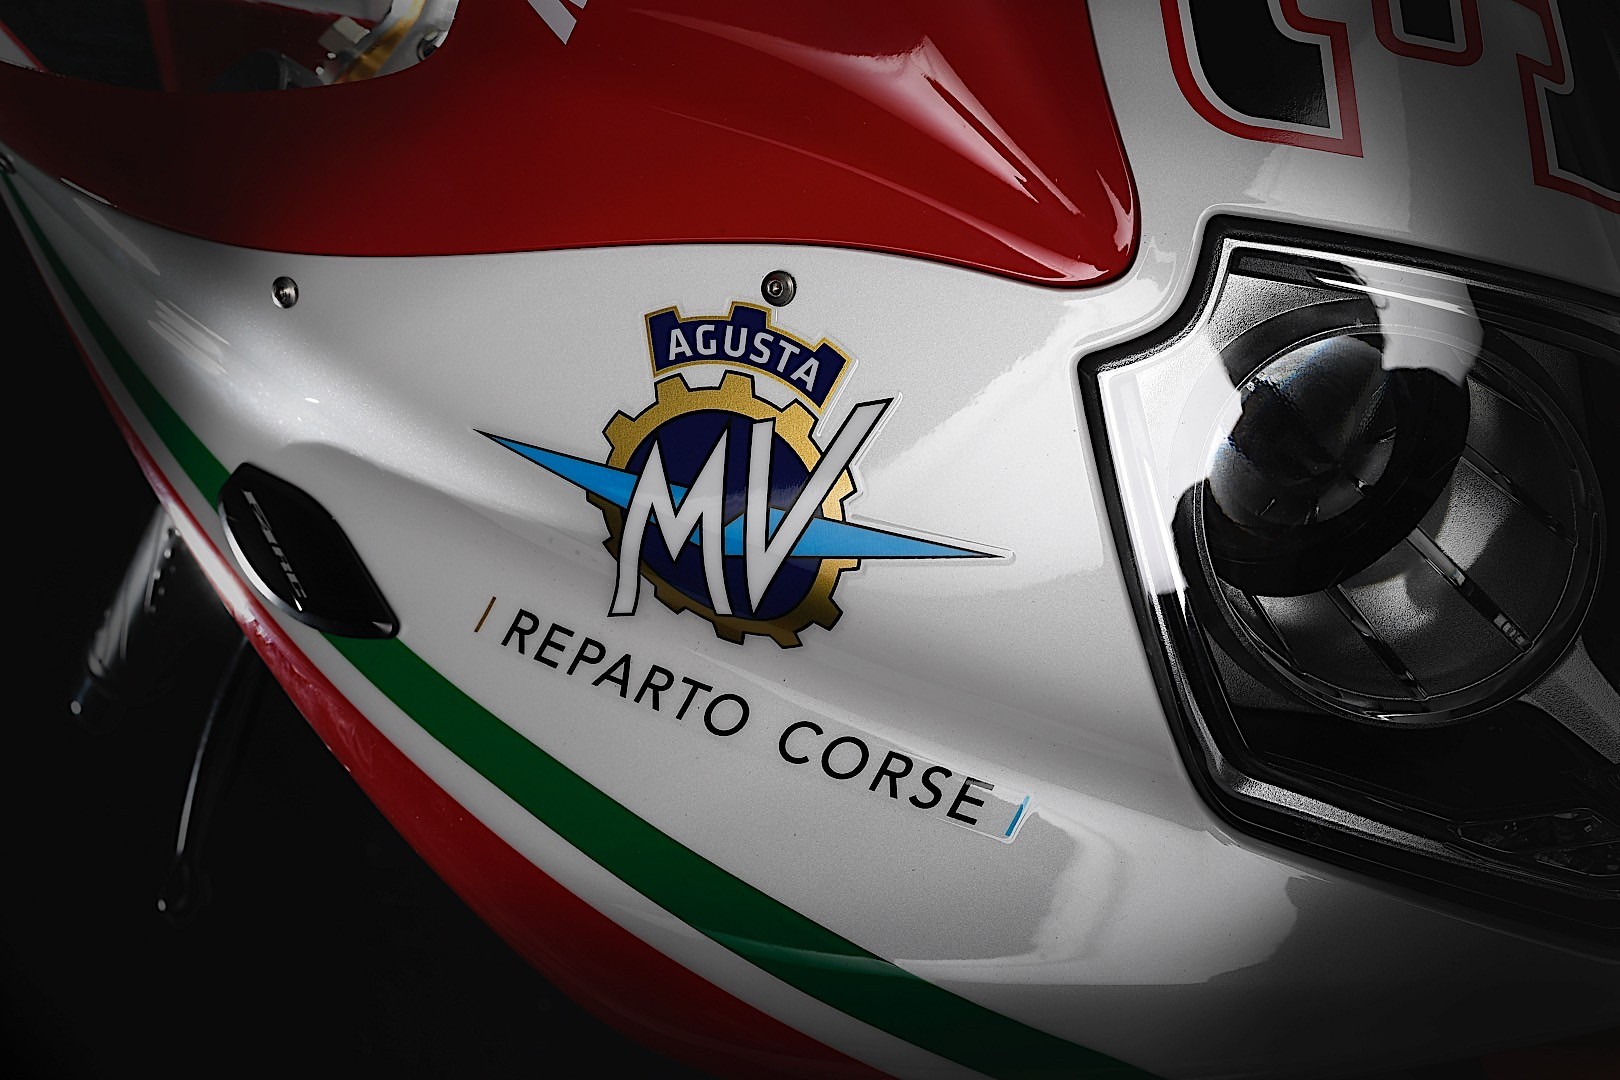 MV Agusta confirms arrival of a 350 cc engine